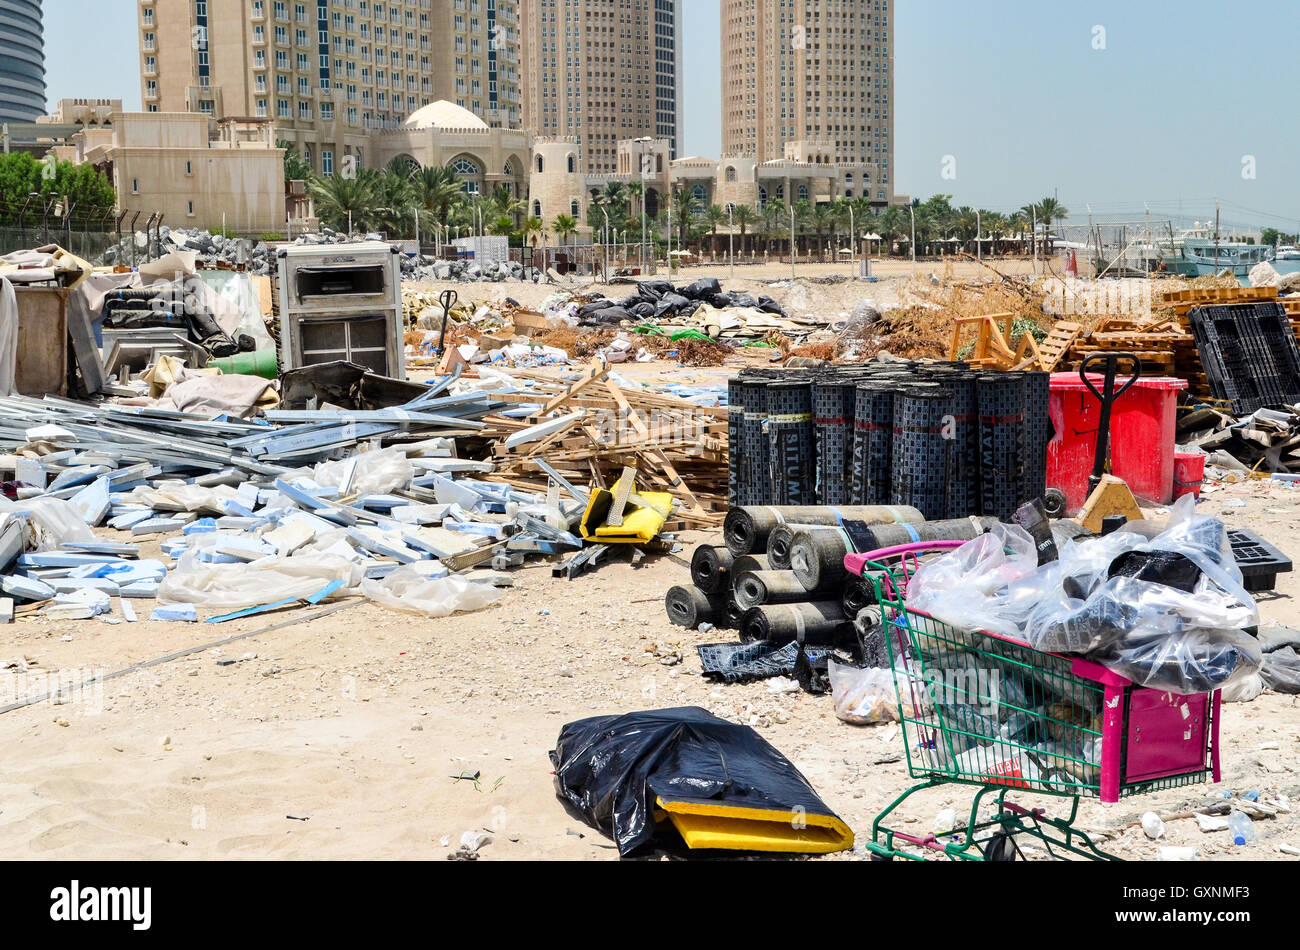 Trash on the beach in the West Bay financial district, Doha, Qatar - Stock Image